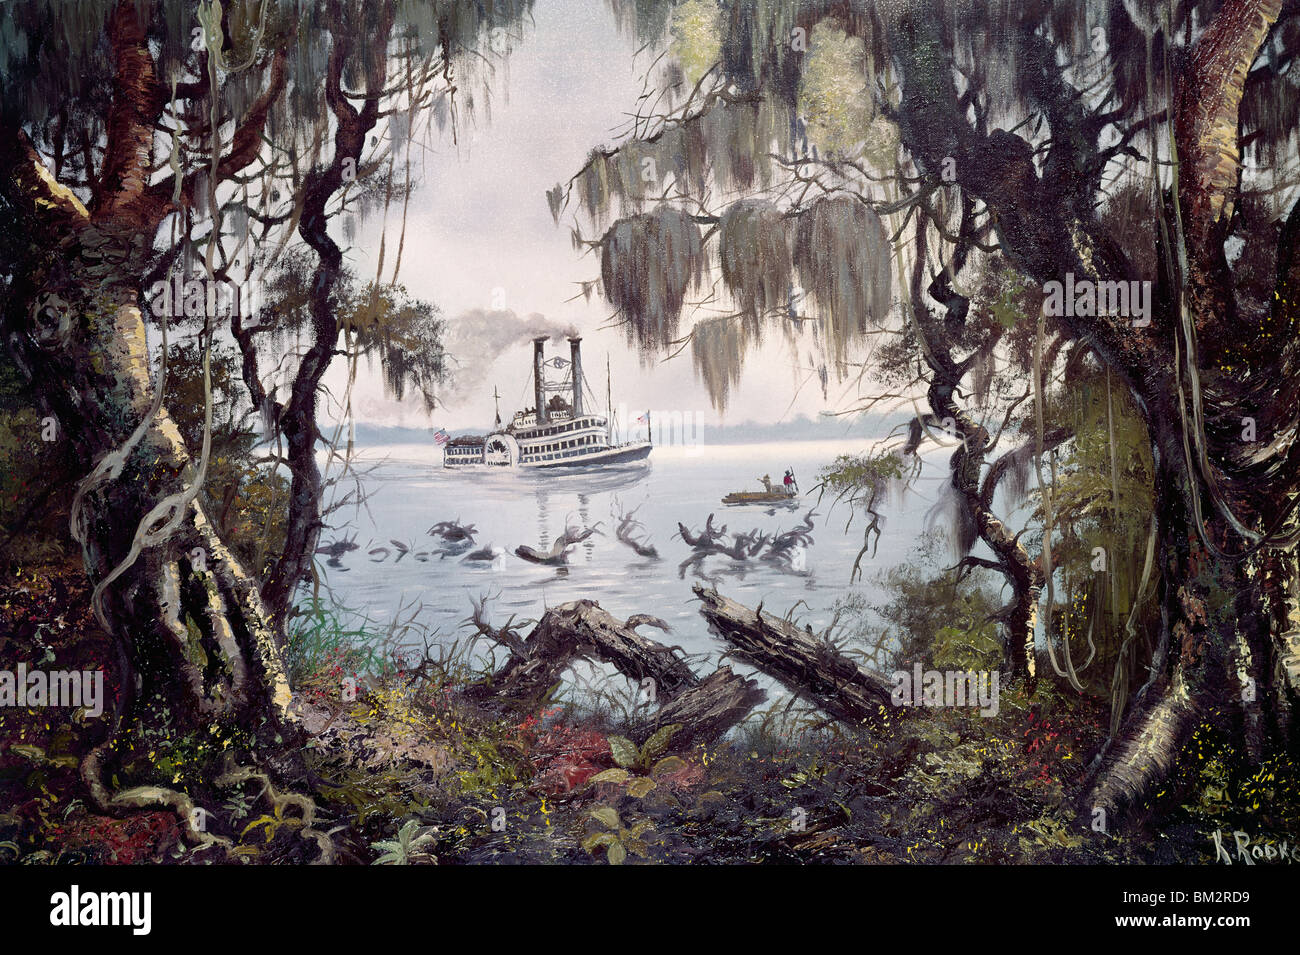 Mississippi, Scene with River-Craft by Konstantin Rodko, (1908-1995) - Stock Image